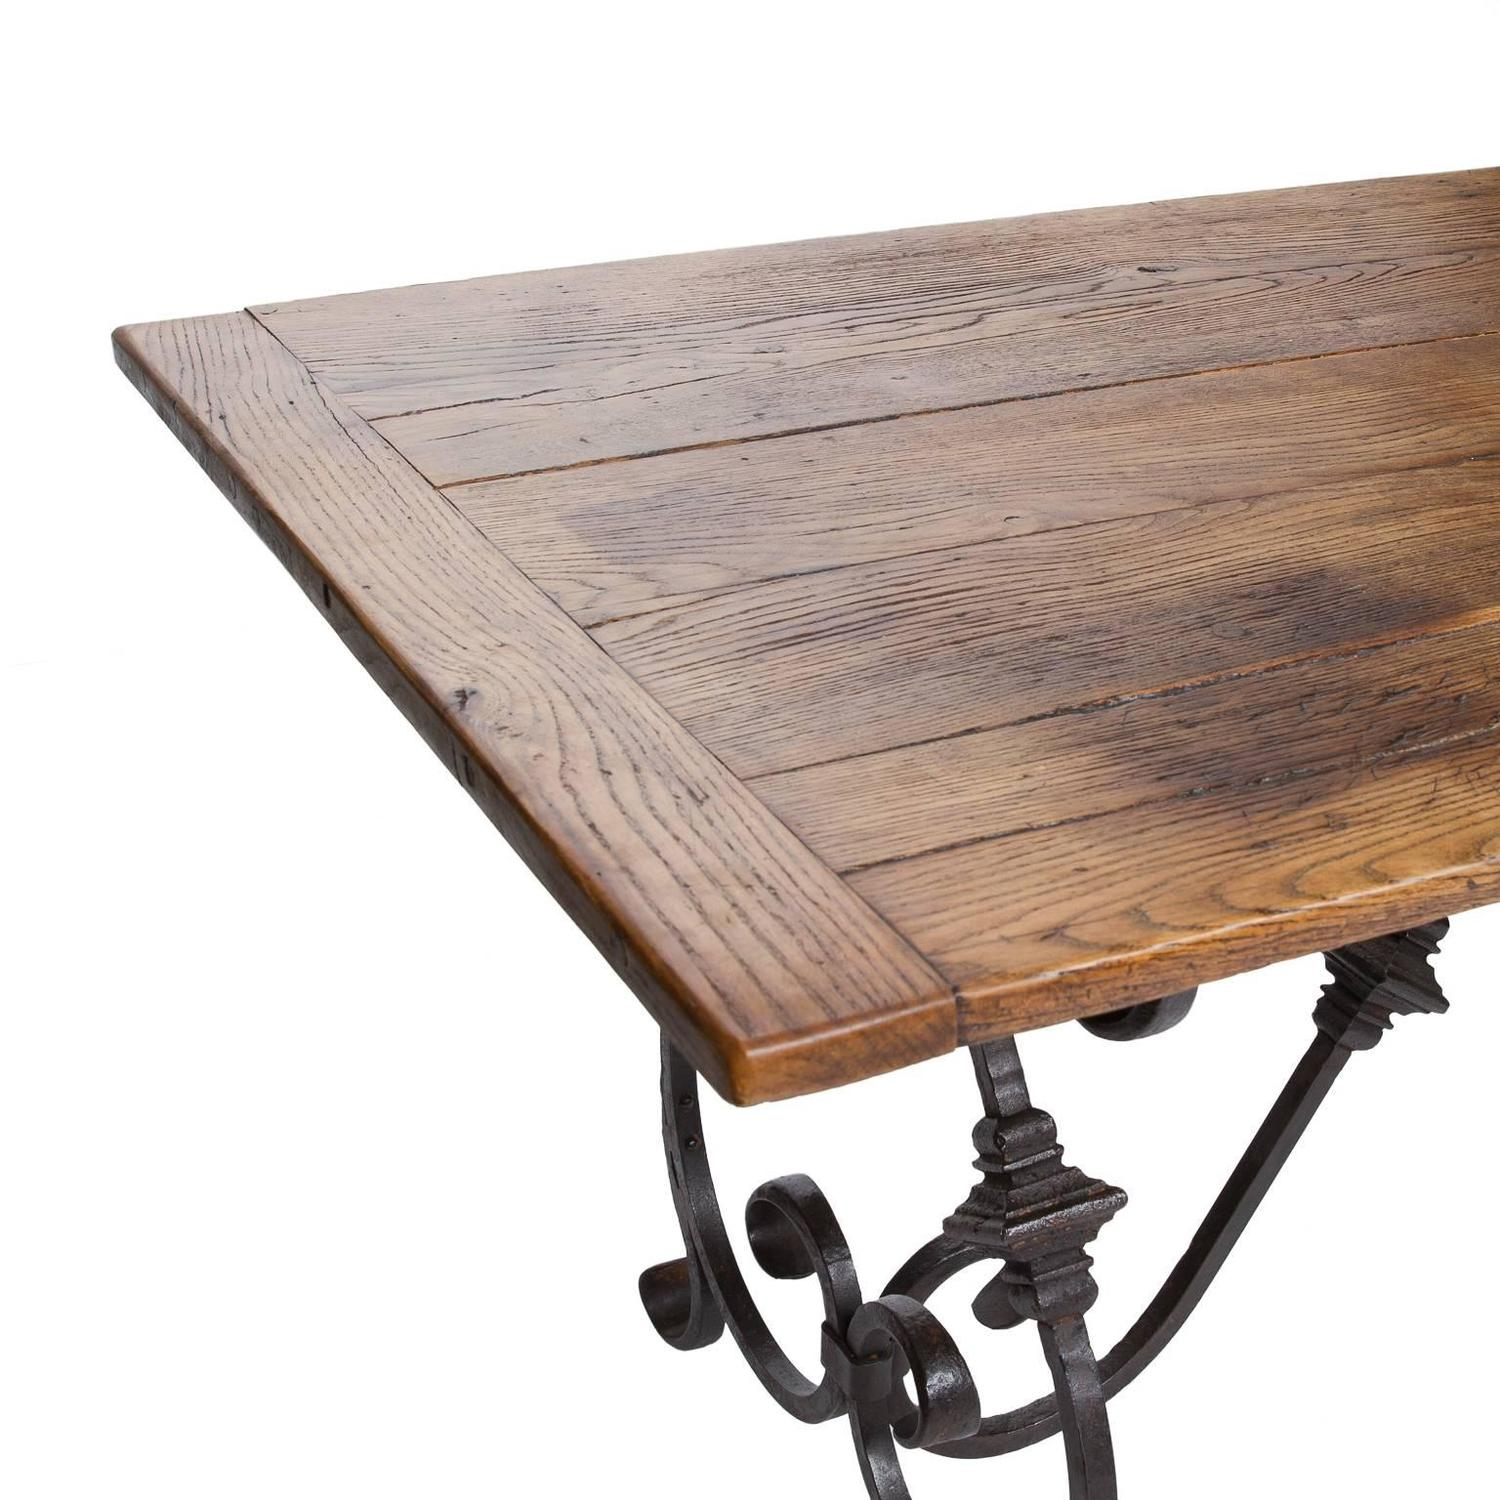 iron and wood dining tables iron and wood dining table at 1stdibs 7586